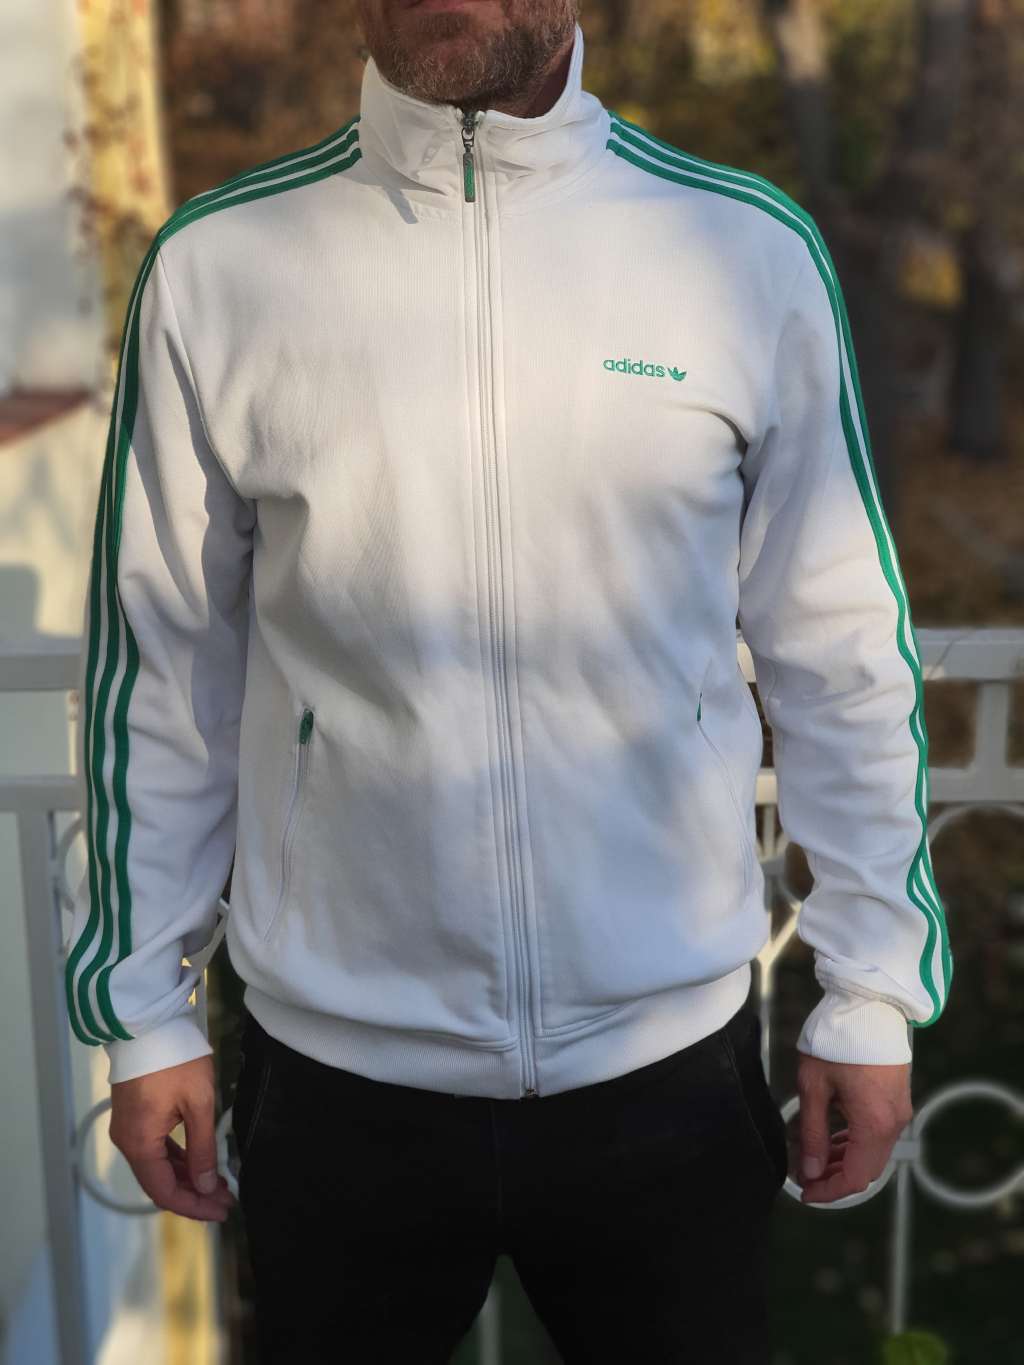 marian for president vintage second hand upcycling mikina adidas white green